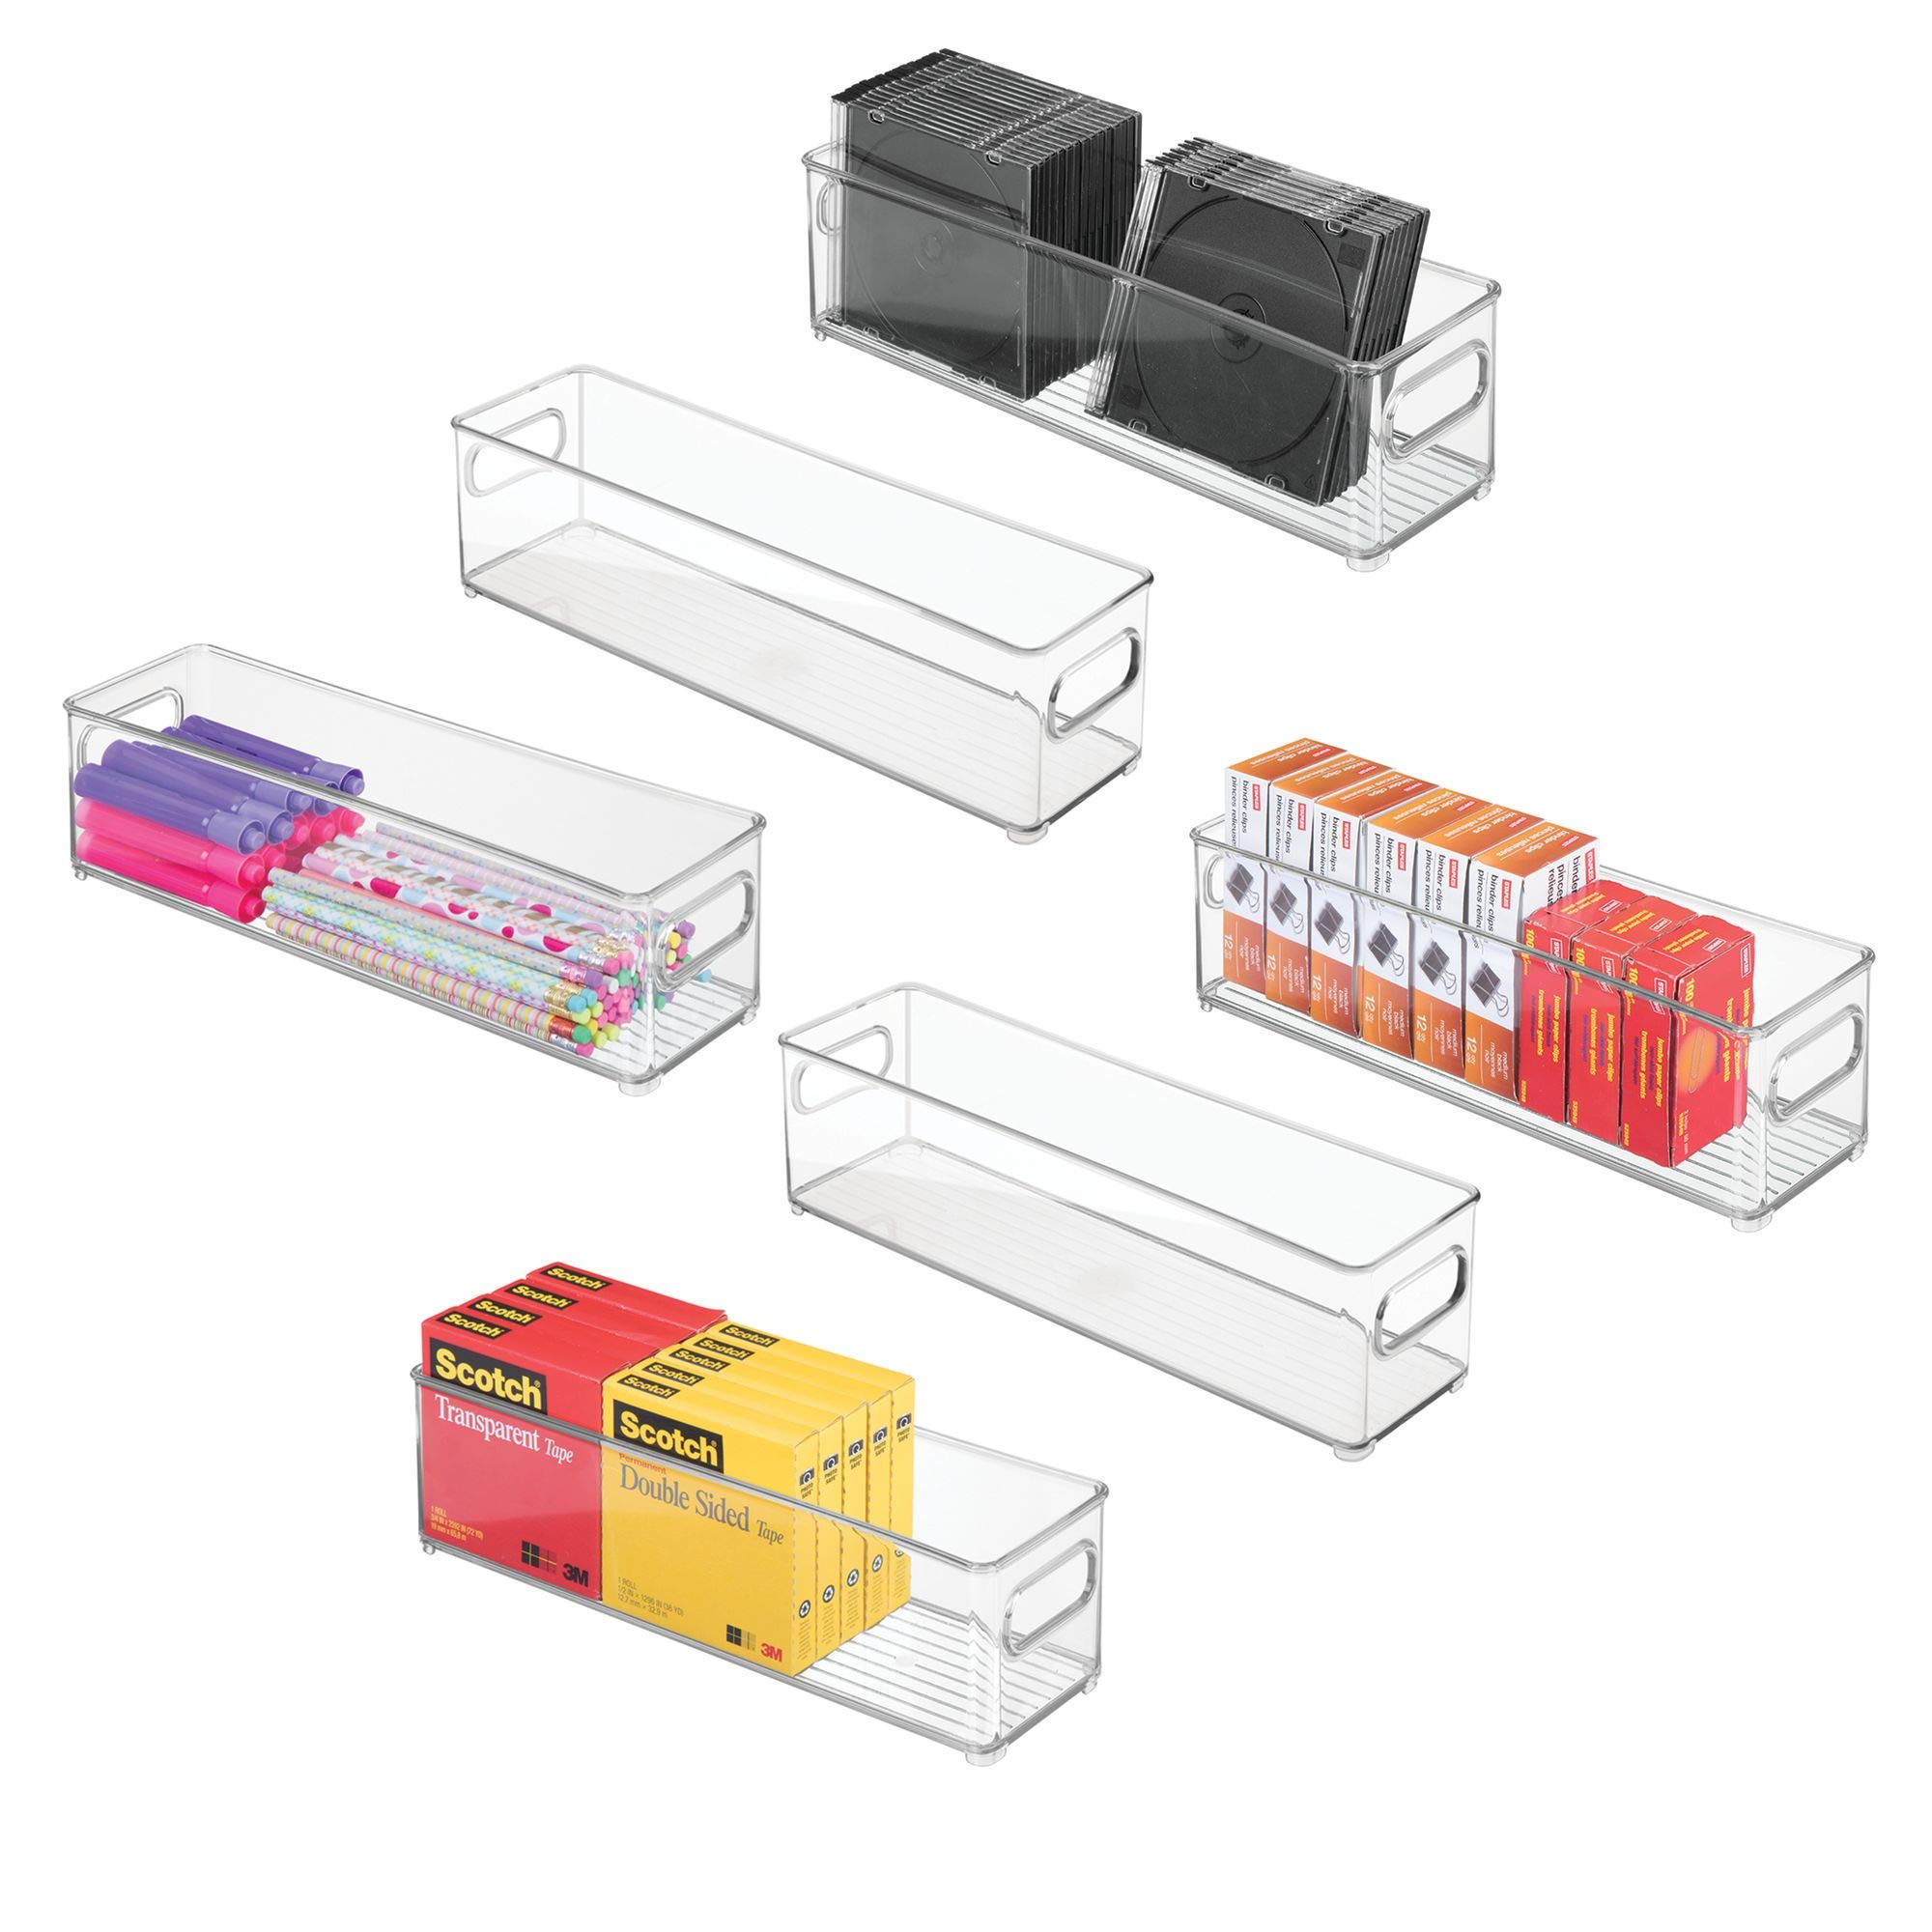 mDesign Stackable Plastic Storage Bin Container, Desk and Drawer Organizer Tote with Handles for Storing Gel Pens, Erasers, Tape, Pens, Pencils, Highlighters, Markers - 14.5'' Long, 6 Pack - Clear